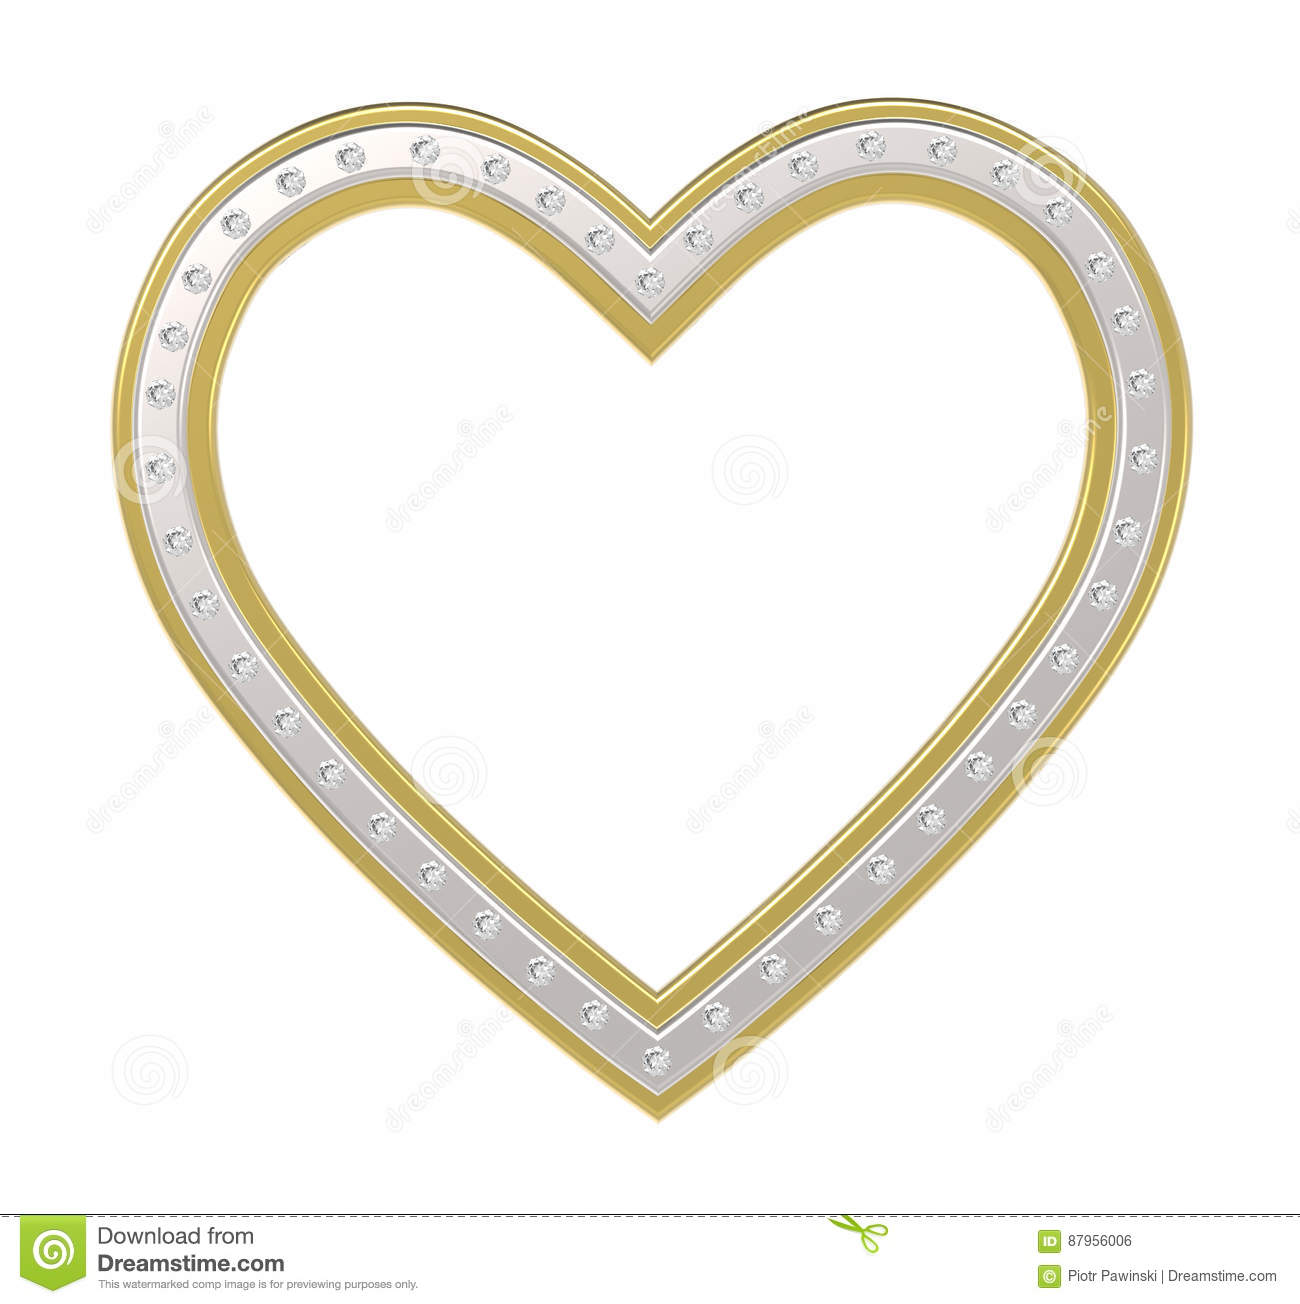 Silver-gold heart with diamonds picture frame